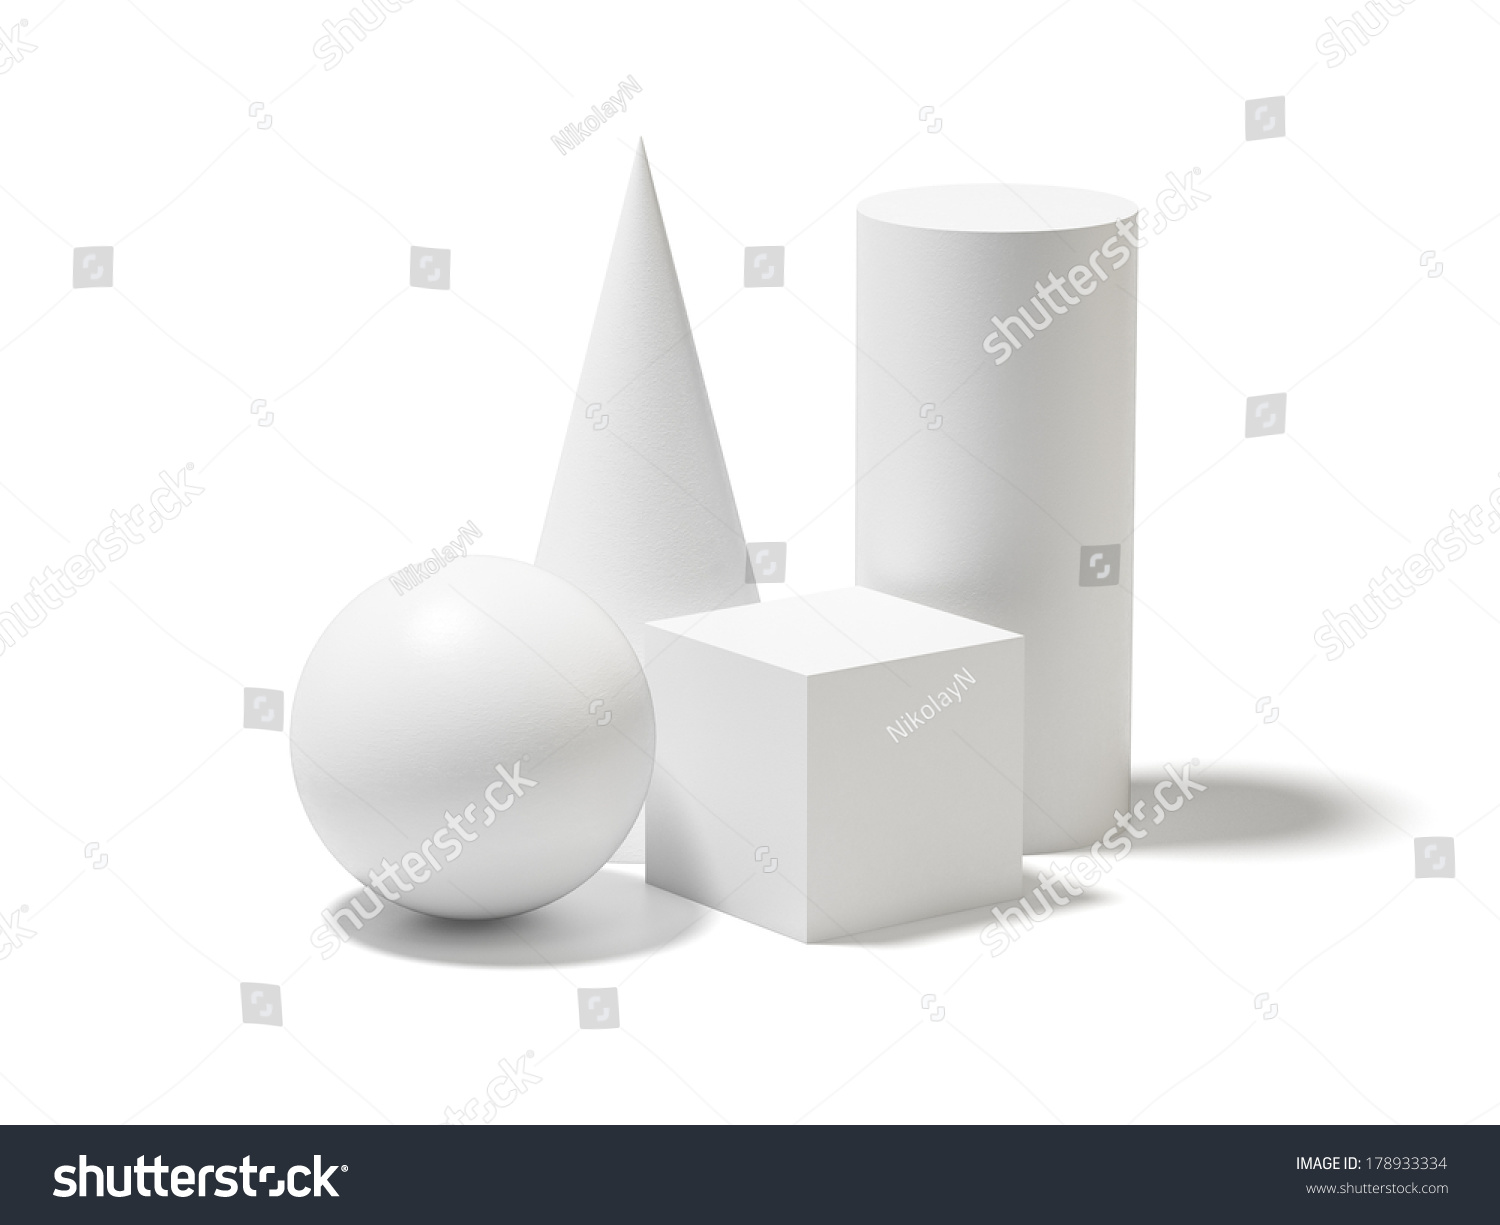 Composition Basic Geometric Shapes Ball Cube Stock